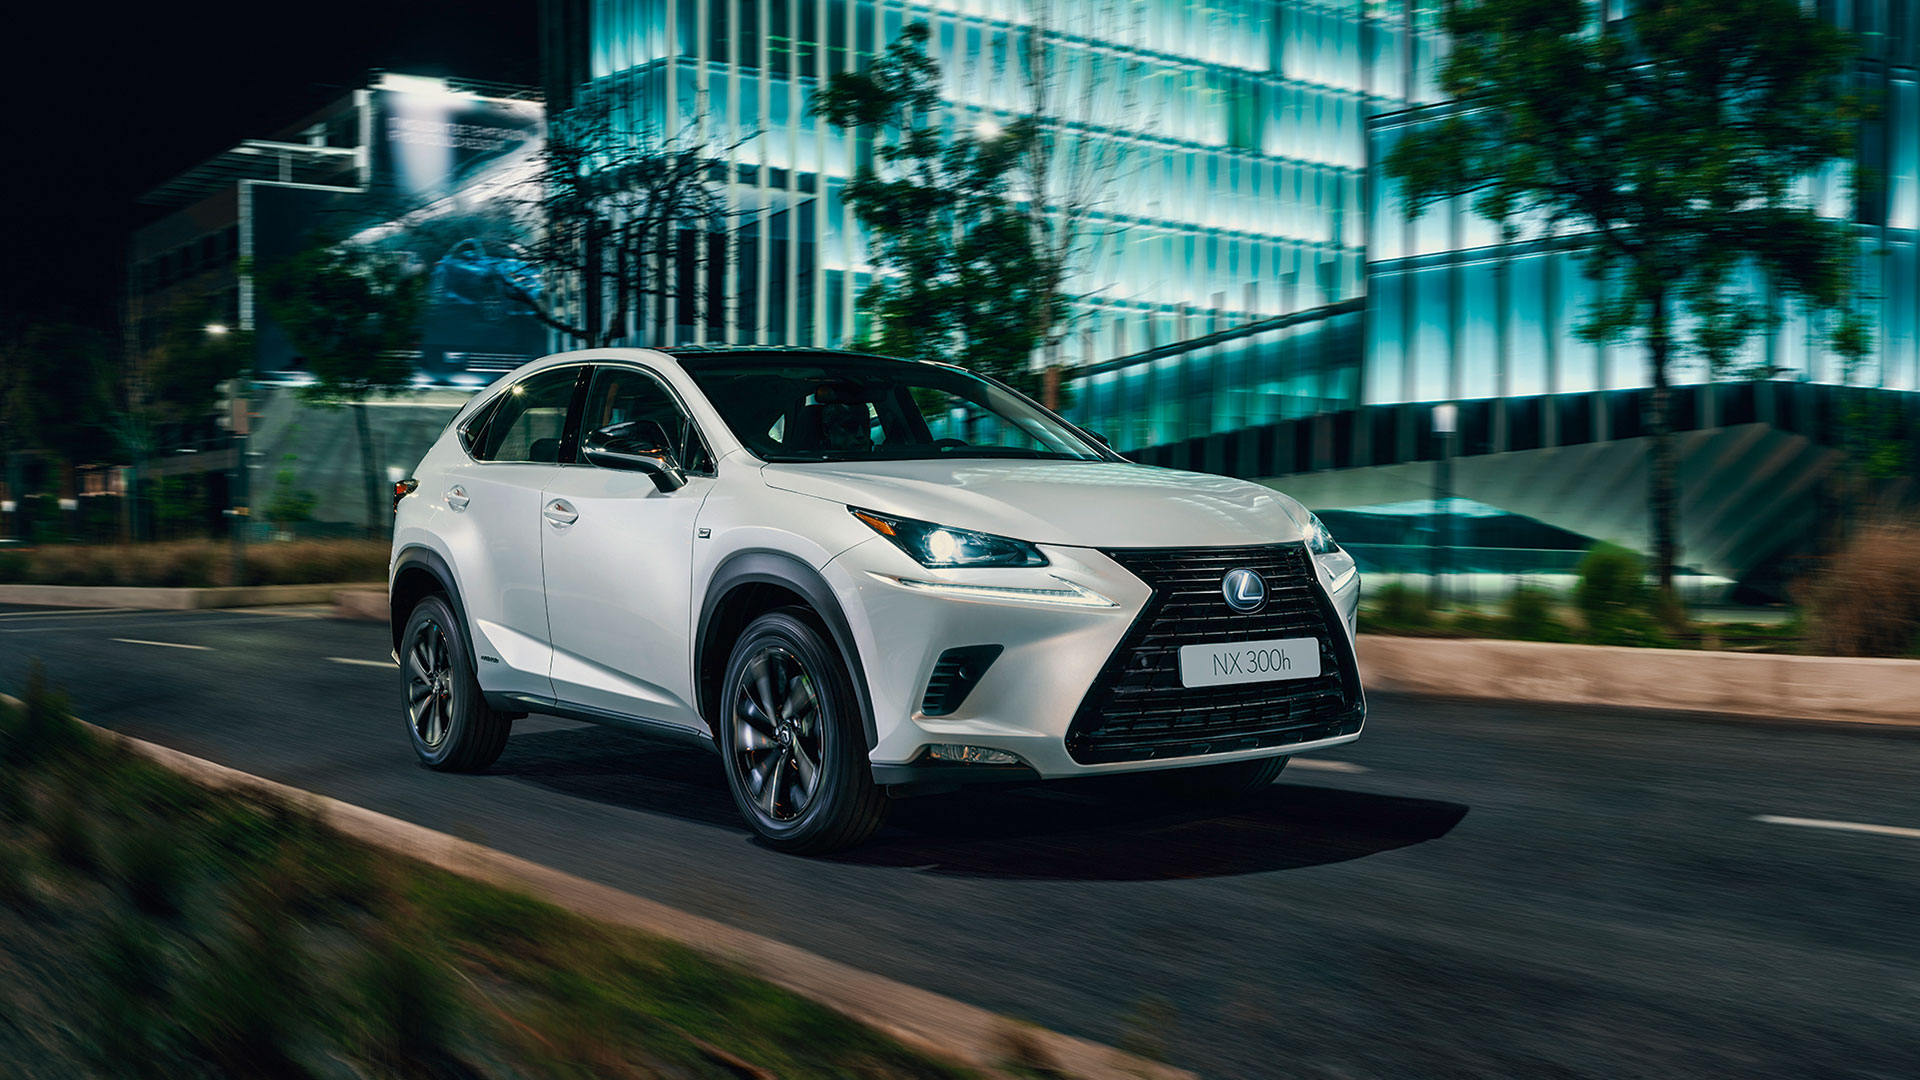 2019 lexus suv explained next step nx